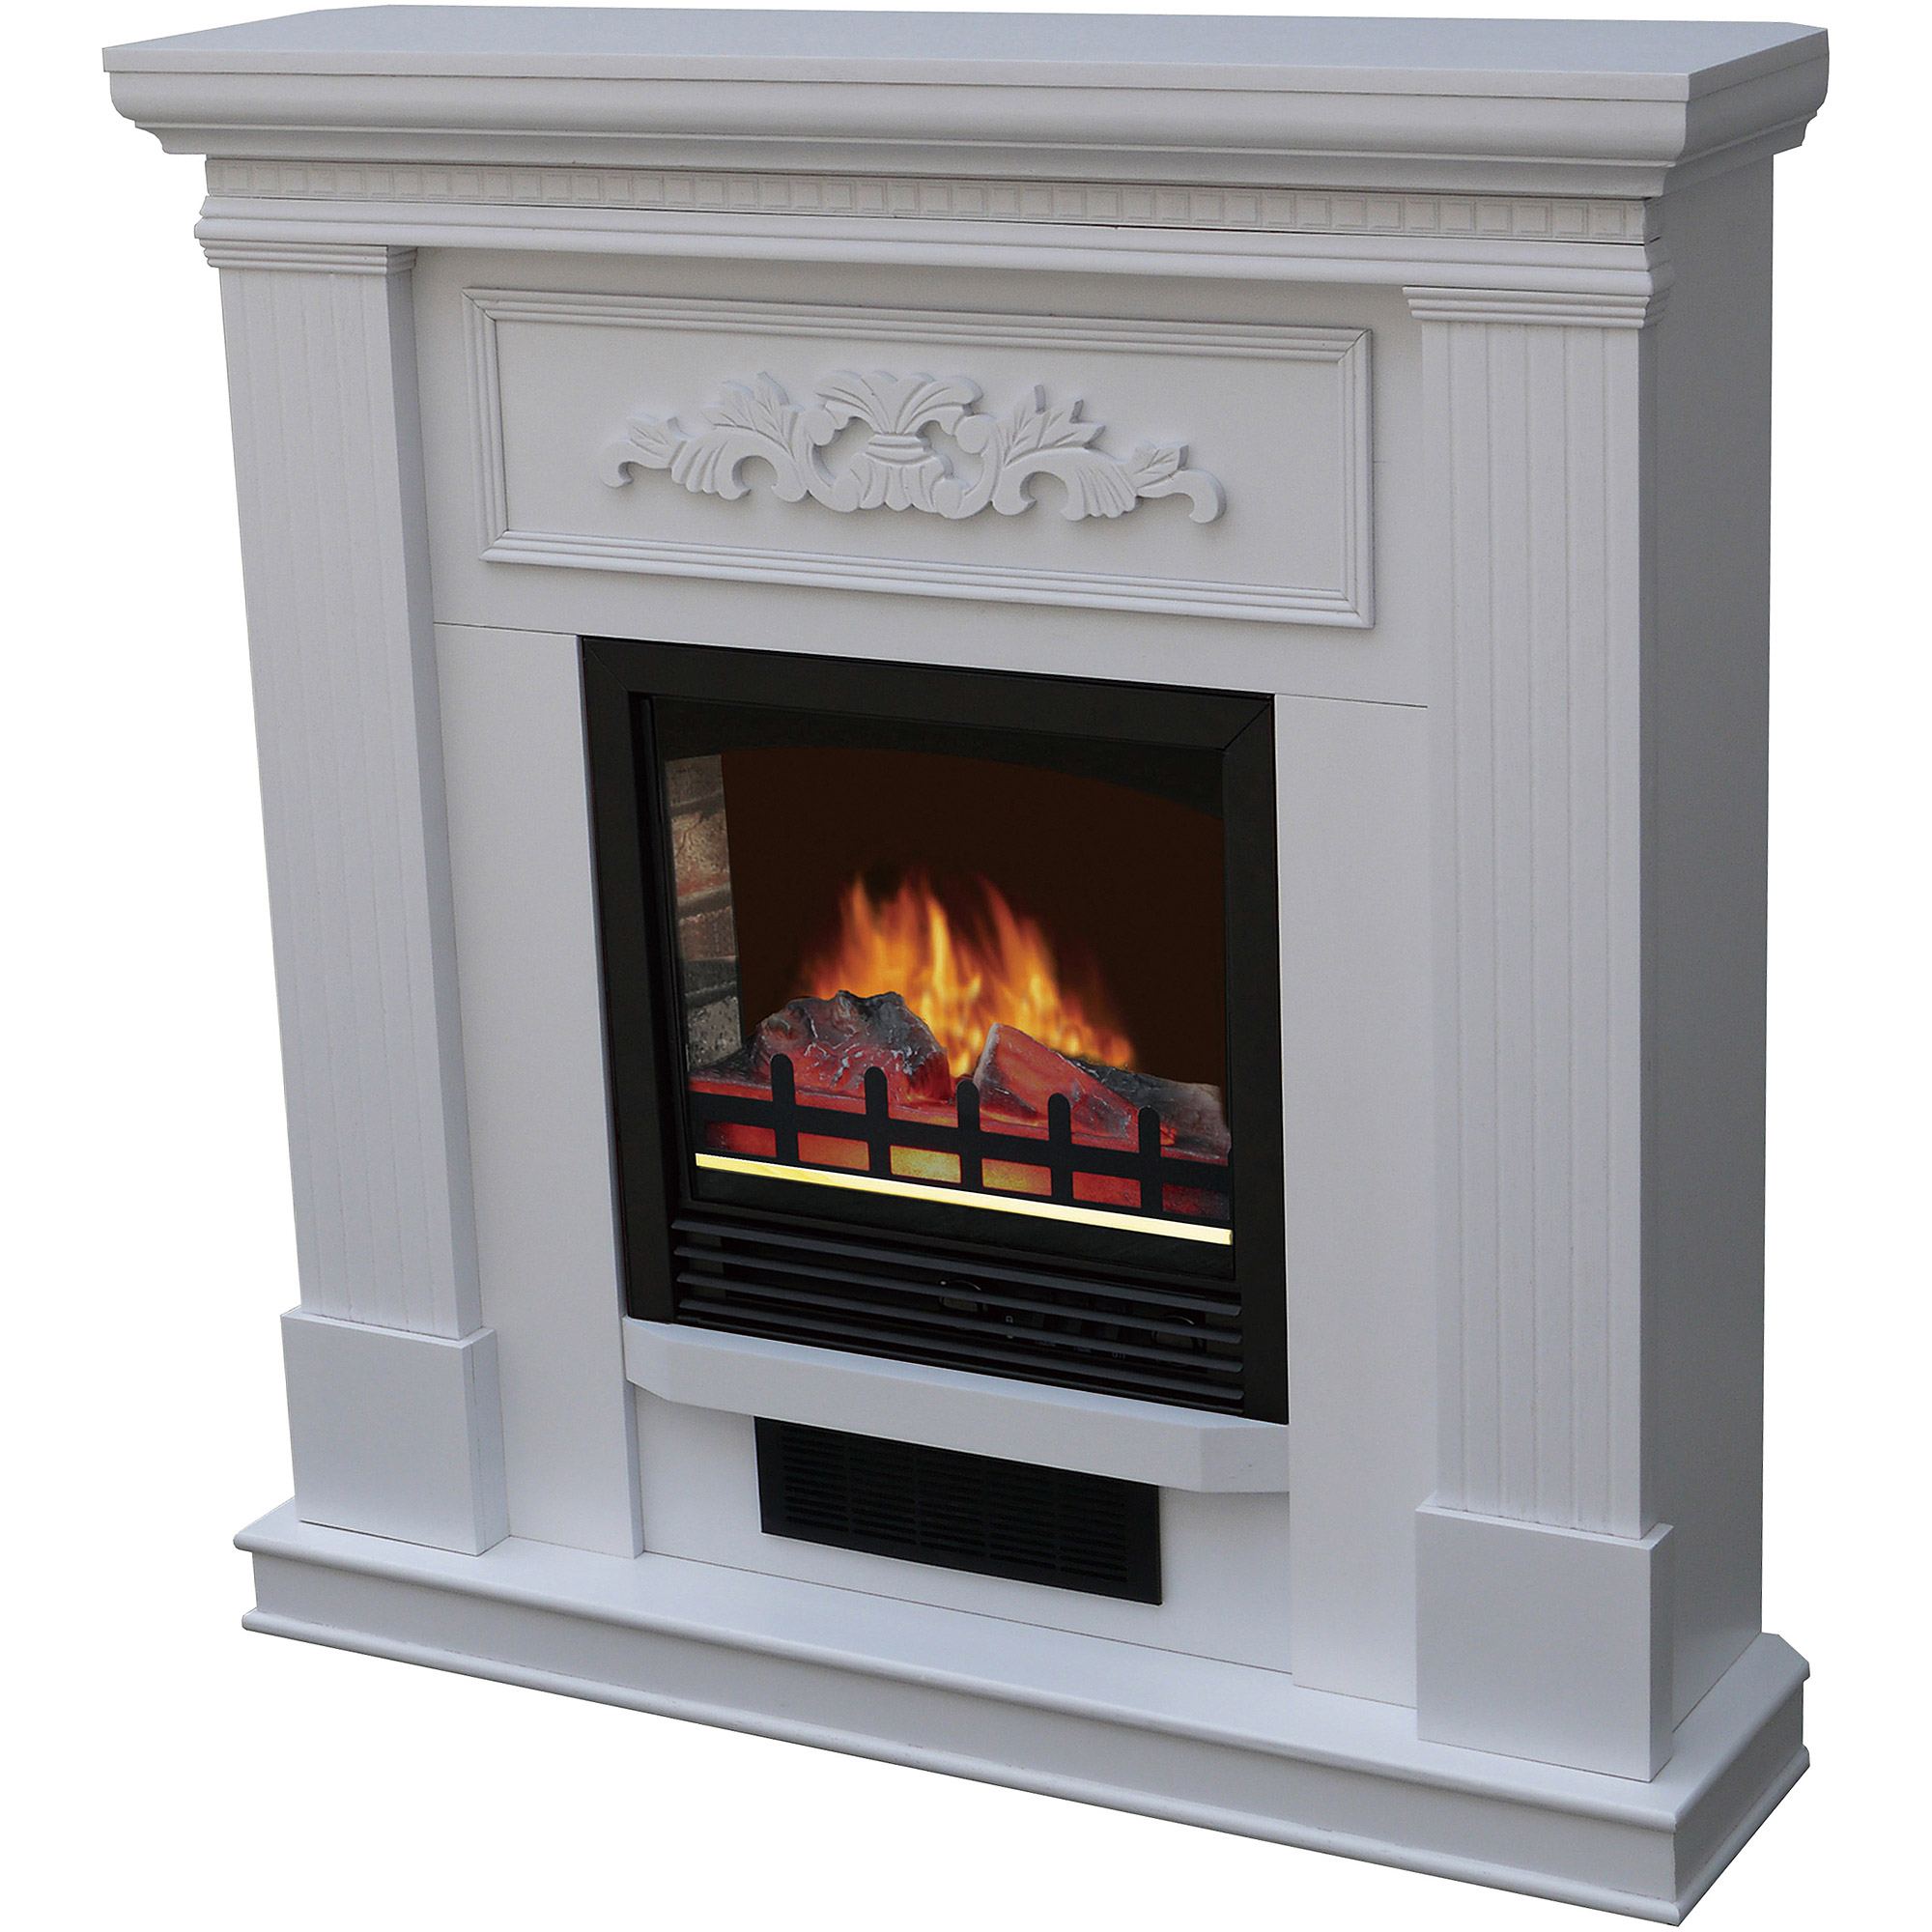 Lowes Fireplace Mantel | Cheap Fireplace Mantels | Home Depot Fireplace Mantel and Surround